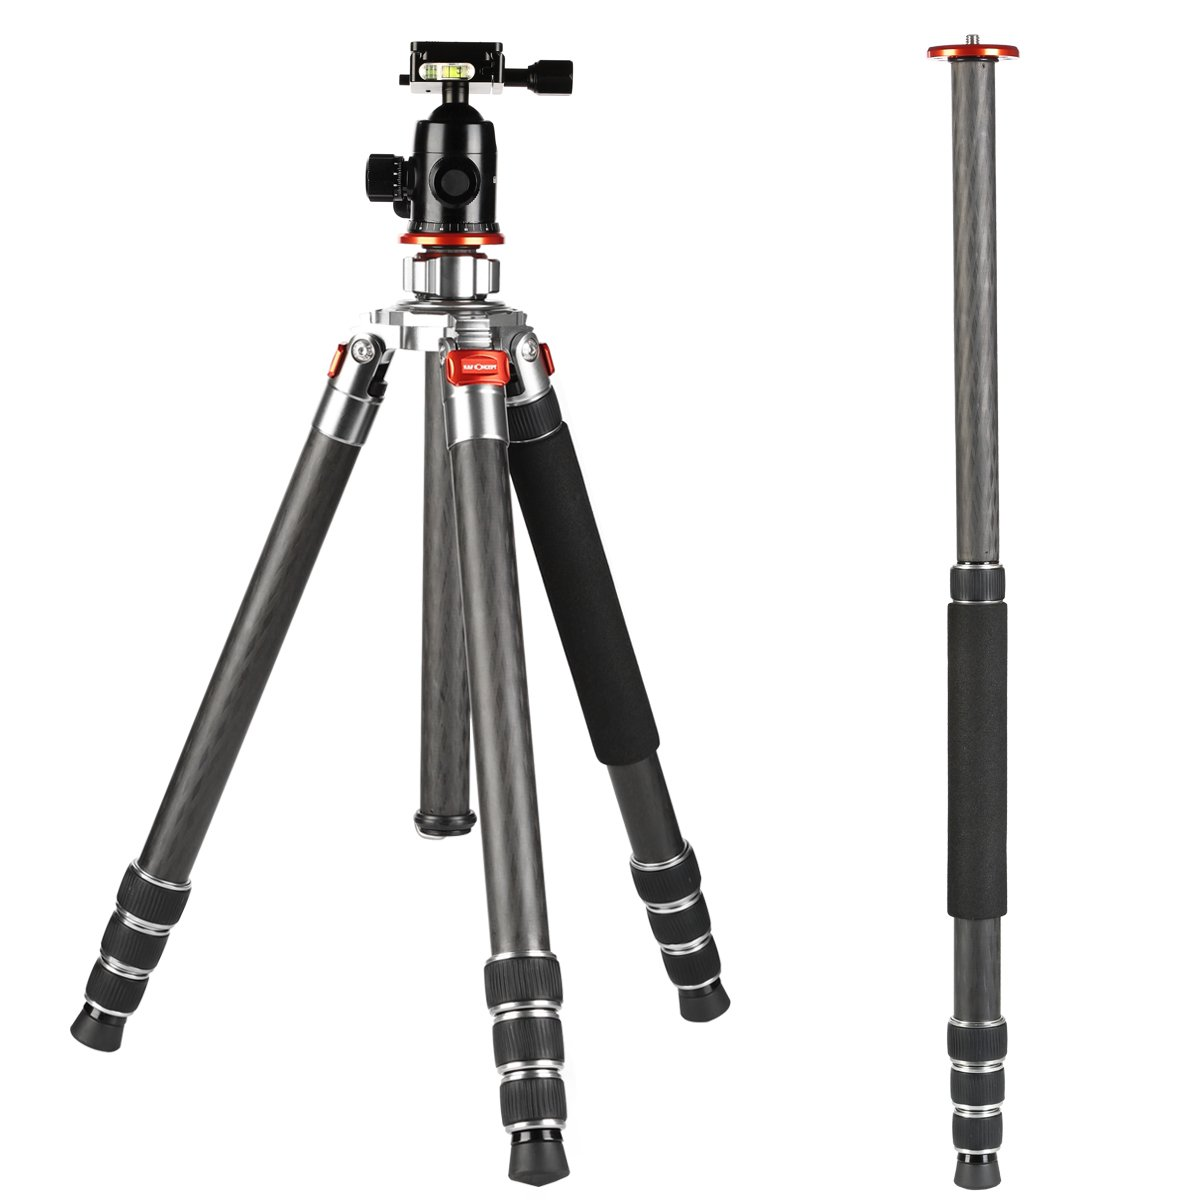 K&f Concept Carbon Fiber Camera Tripod 4 Section 61 Inch with Load Capacity 26.46lbs Monopod for Camera DSLR DV Canon Nikon Sony